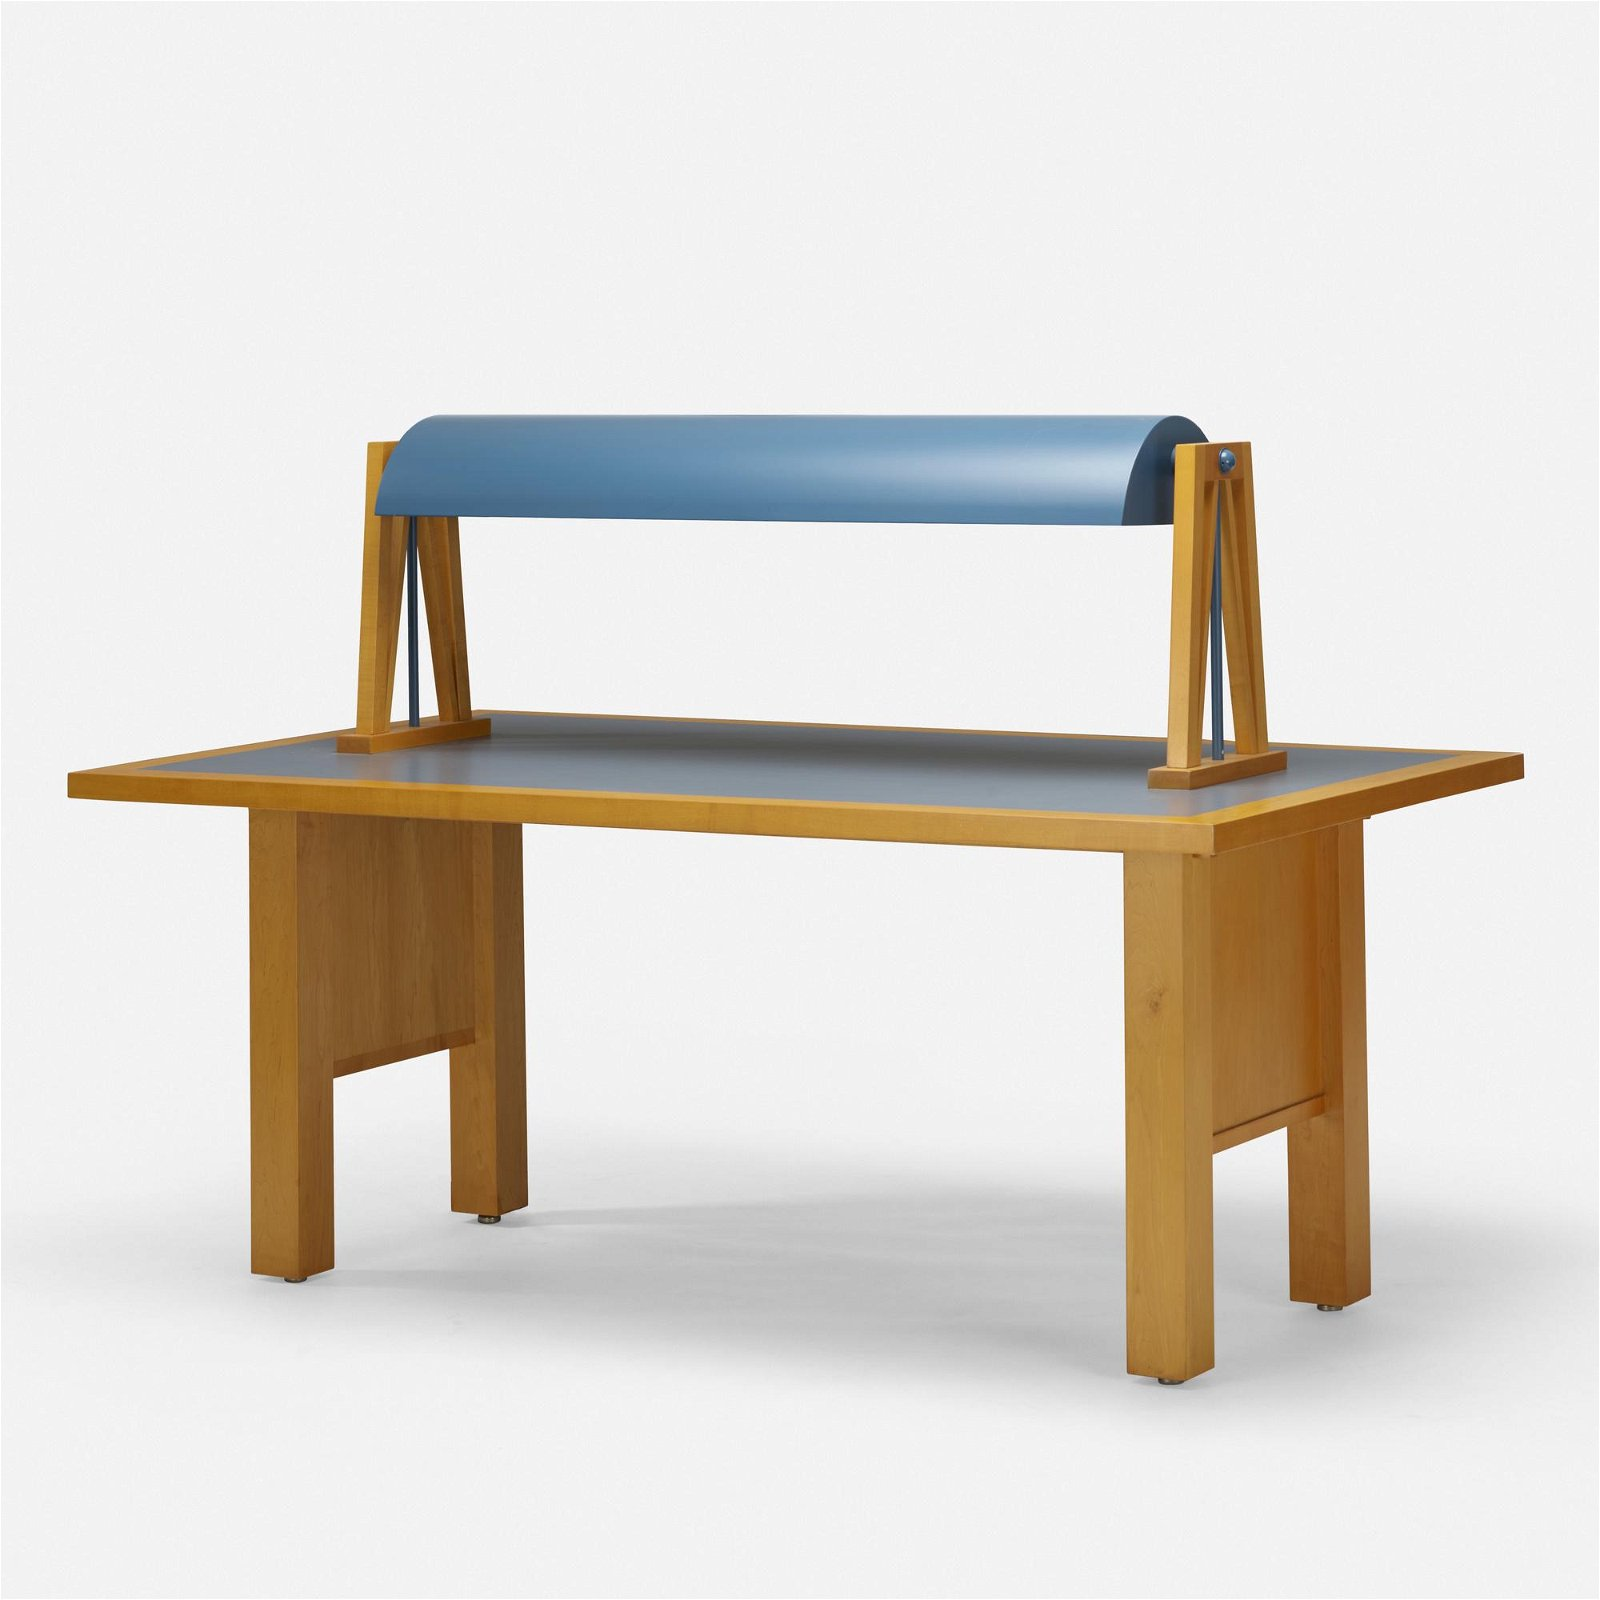 Michael Graves, illuminated library table